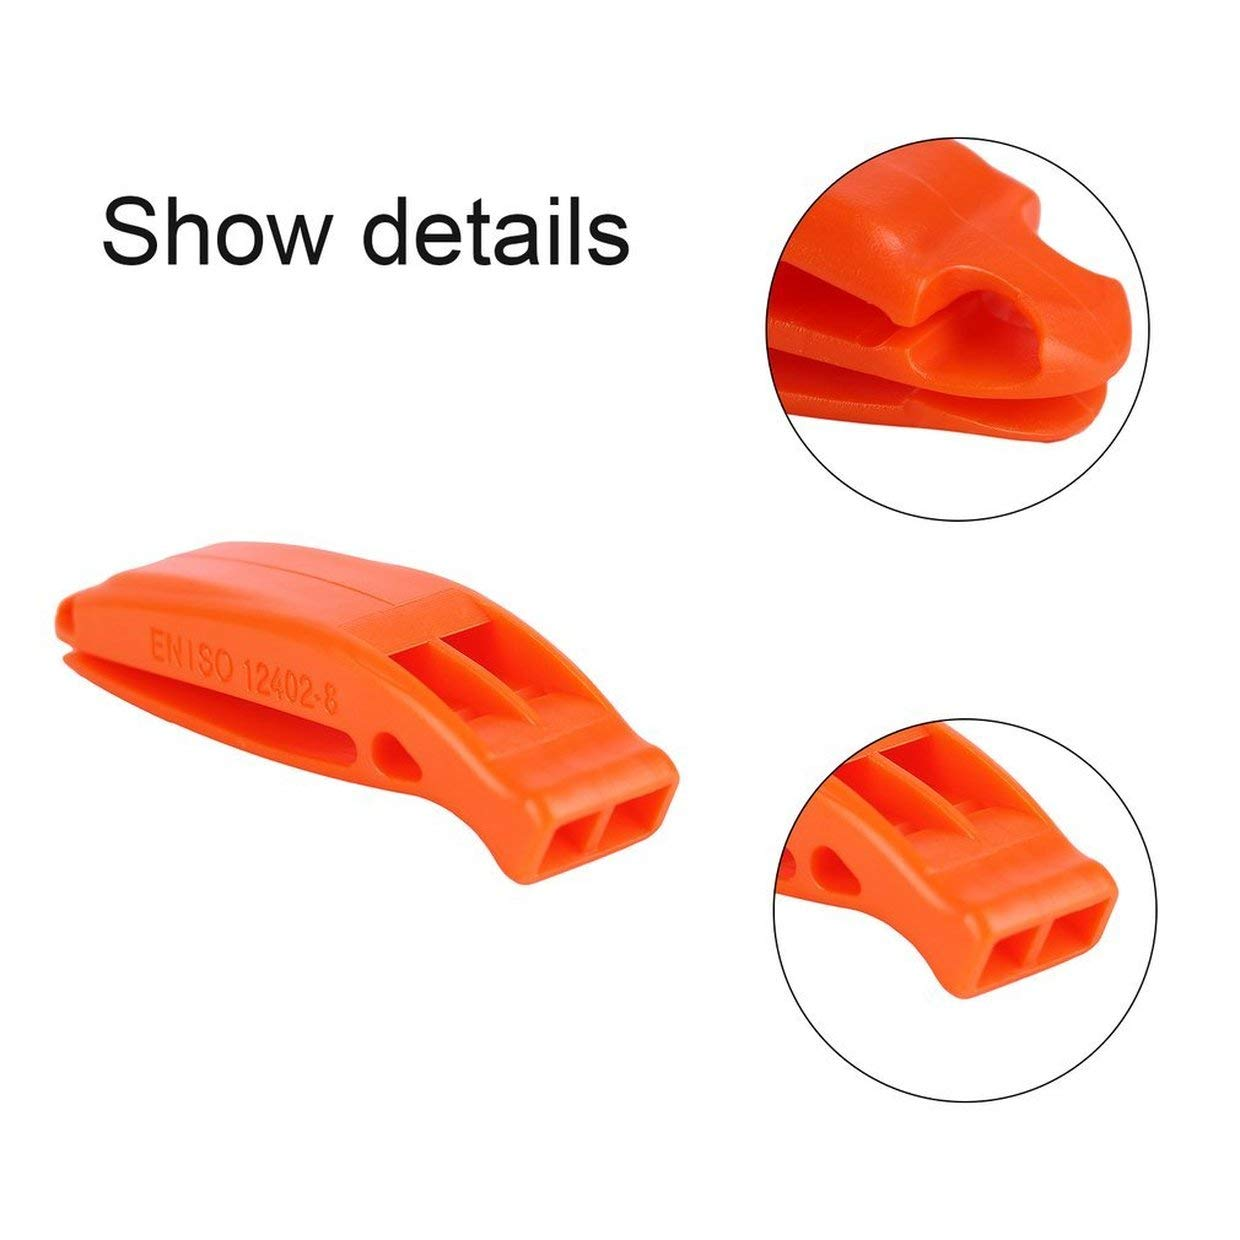 MXECO Durable Lightweight Non-corrosivePortable Outdoor Survival Rescue Emergency Plastic Loud Whistle With built in Clip